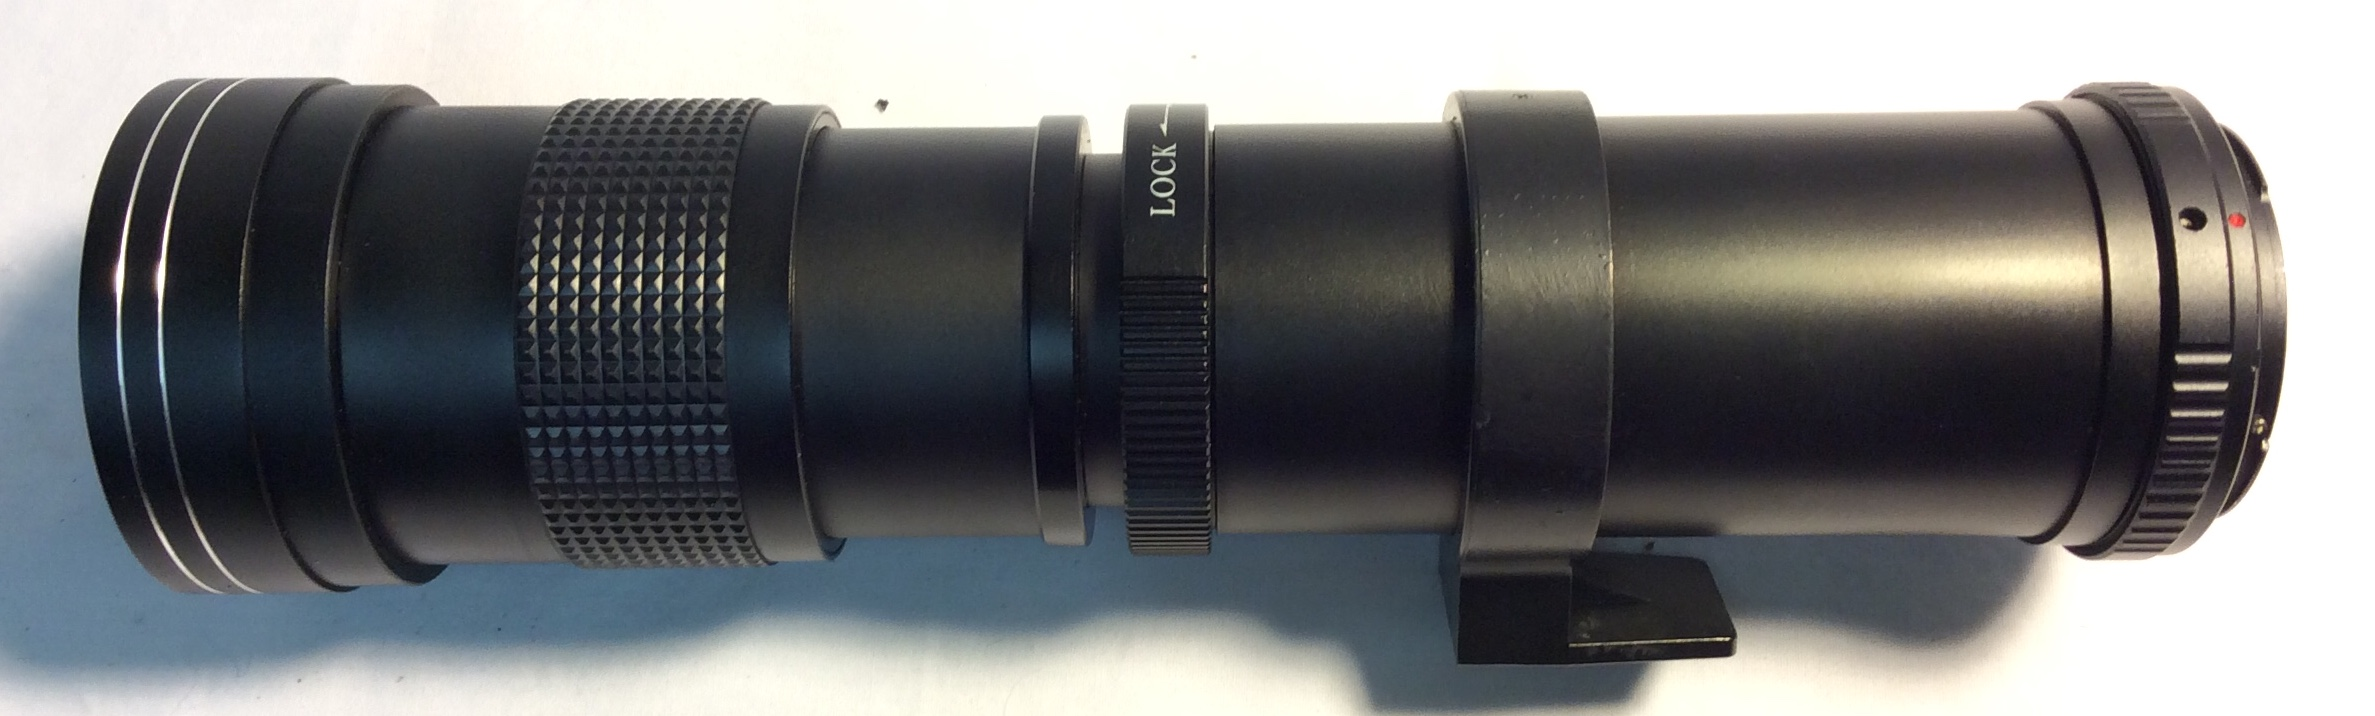 Opteka 420-800mm Super telephoto